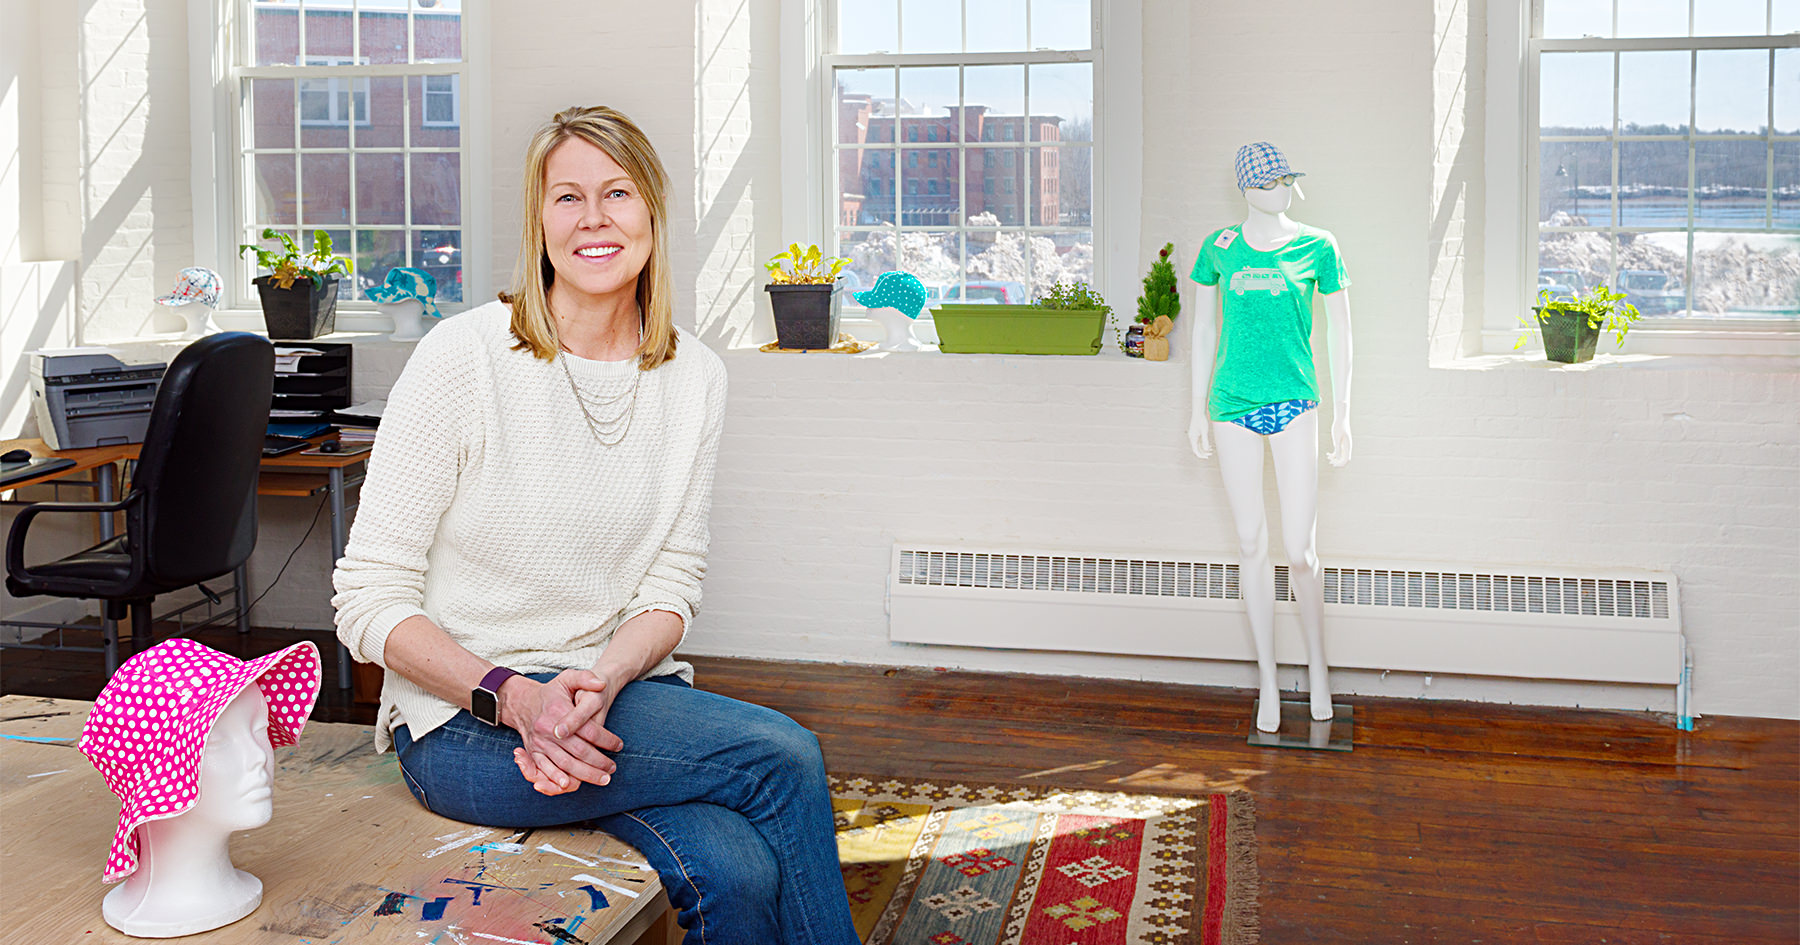 Karen Gellis, owner of Swimlids, stops for a brief moment in her studio at the Pepperell Mill Campus to be photographed by Portland Headshot.